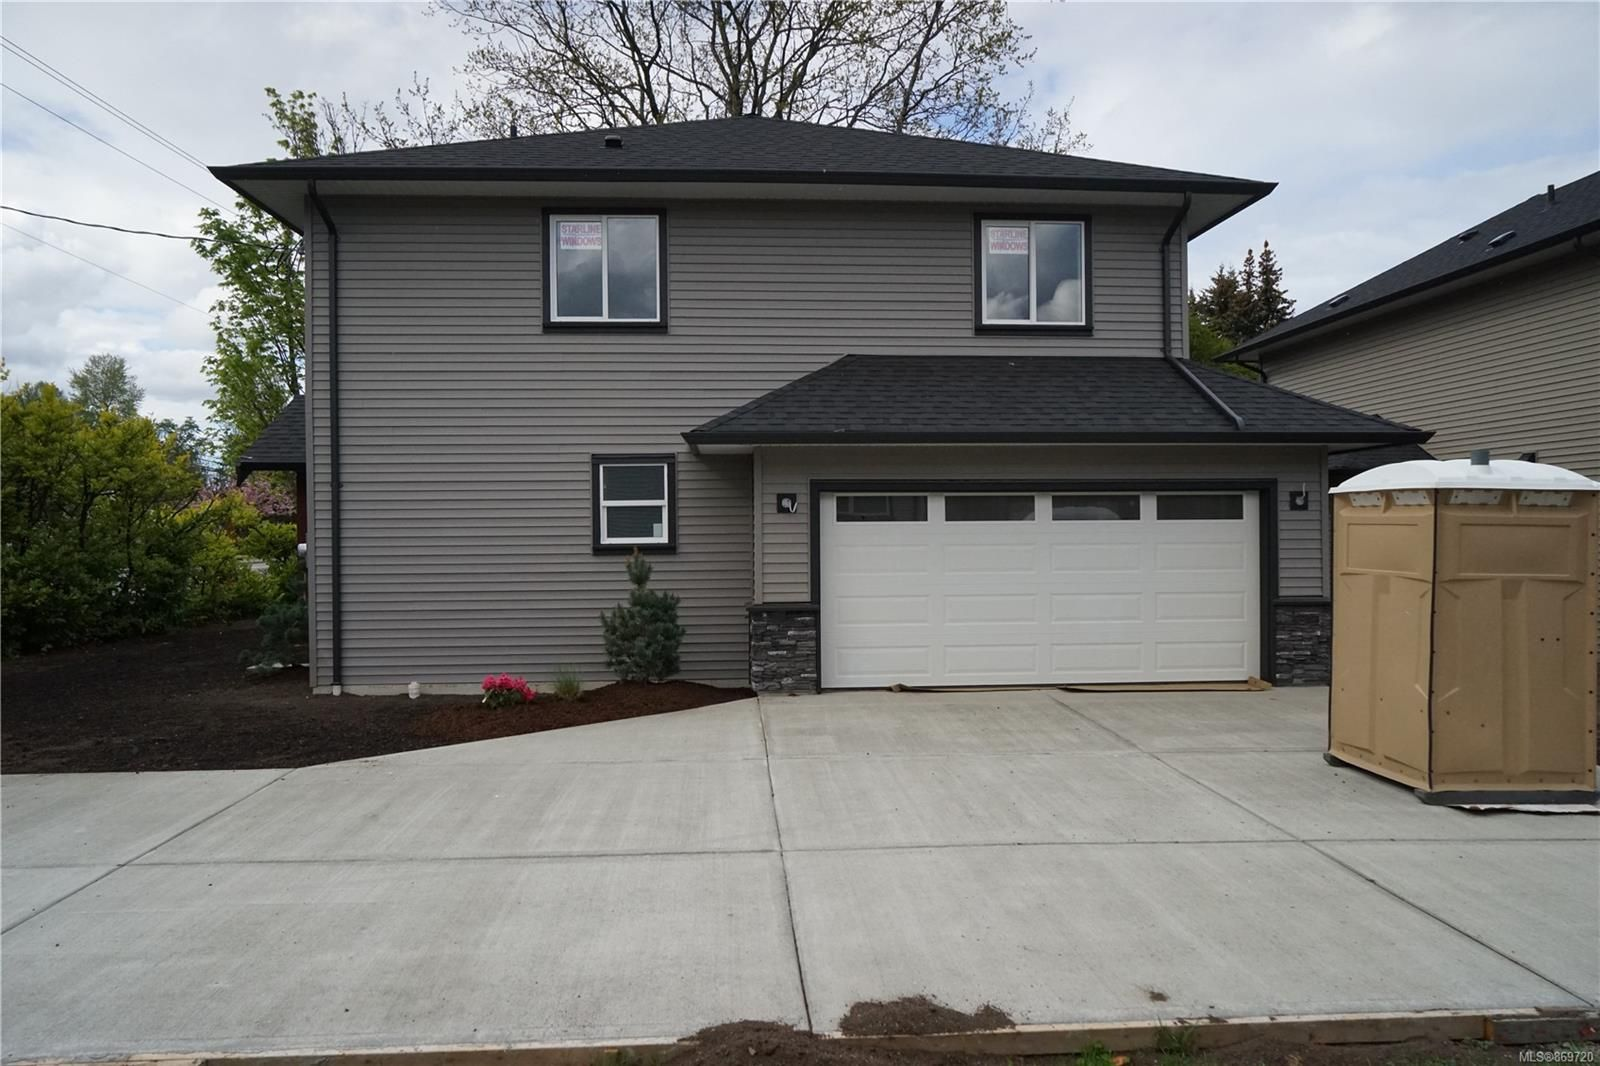 Photo 6: Photos: 770 Bruce Ave in : Na South Nanaimo House for sale (Nanaimo)  : MLS®# 869720